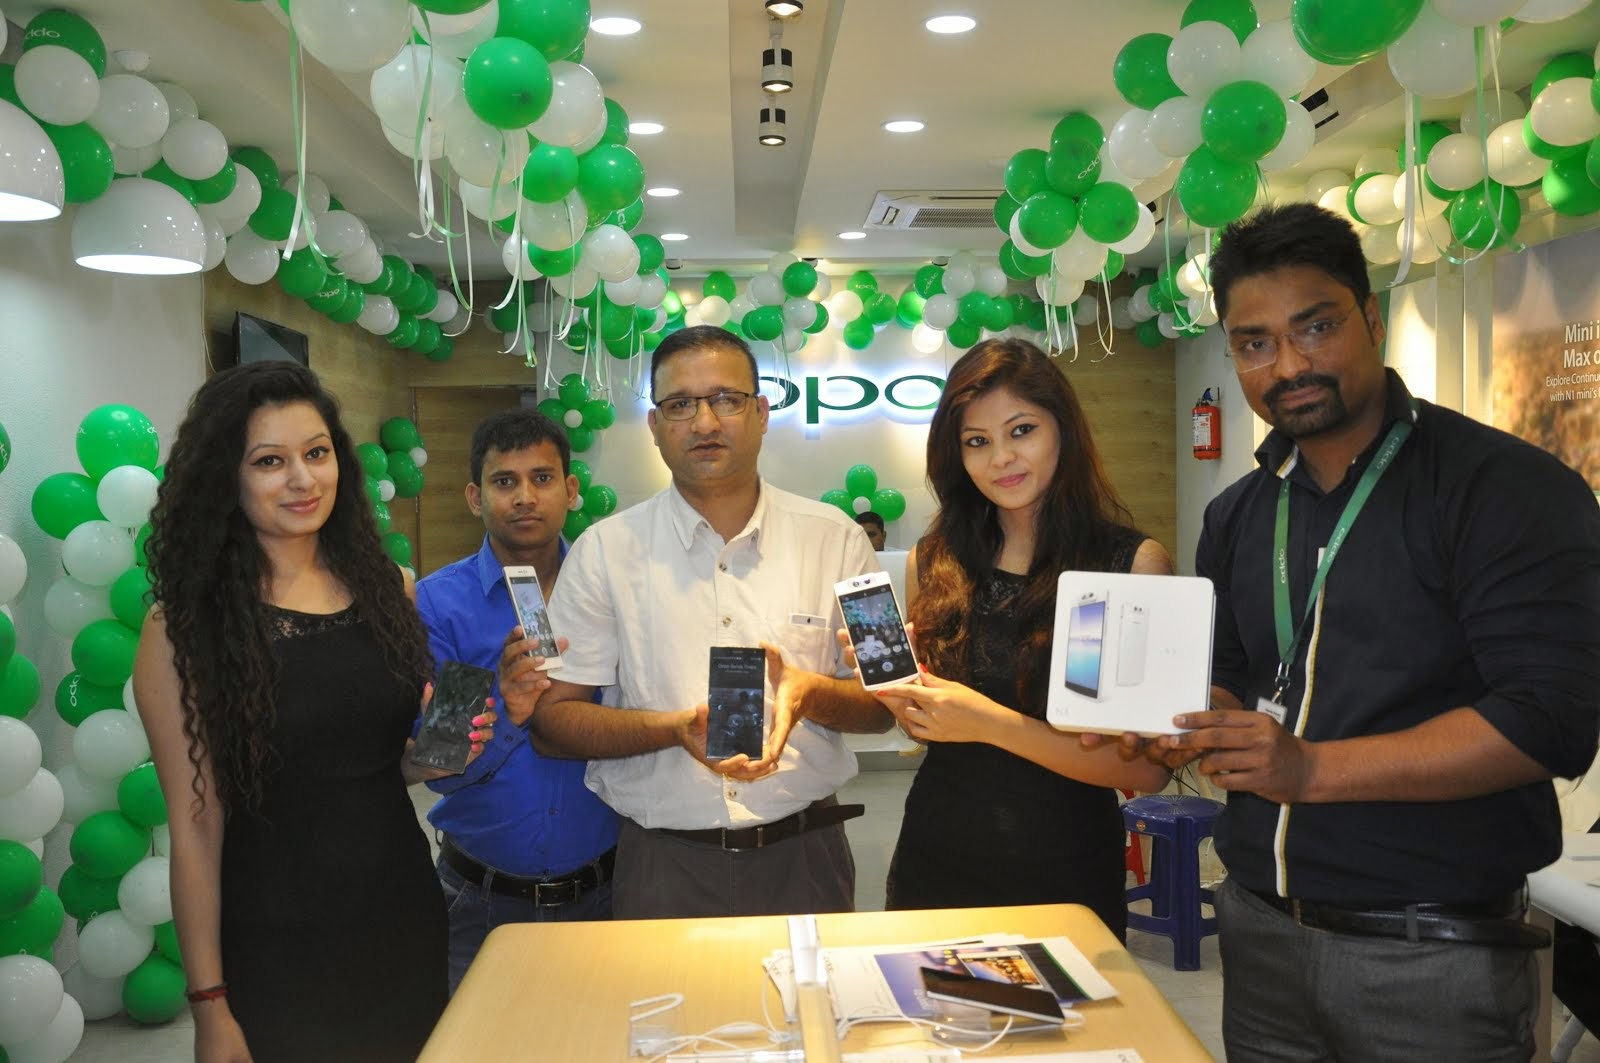 Oppo Careers | 5800 Oppo Mobile Company Jobs - Apply Here